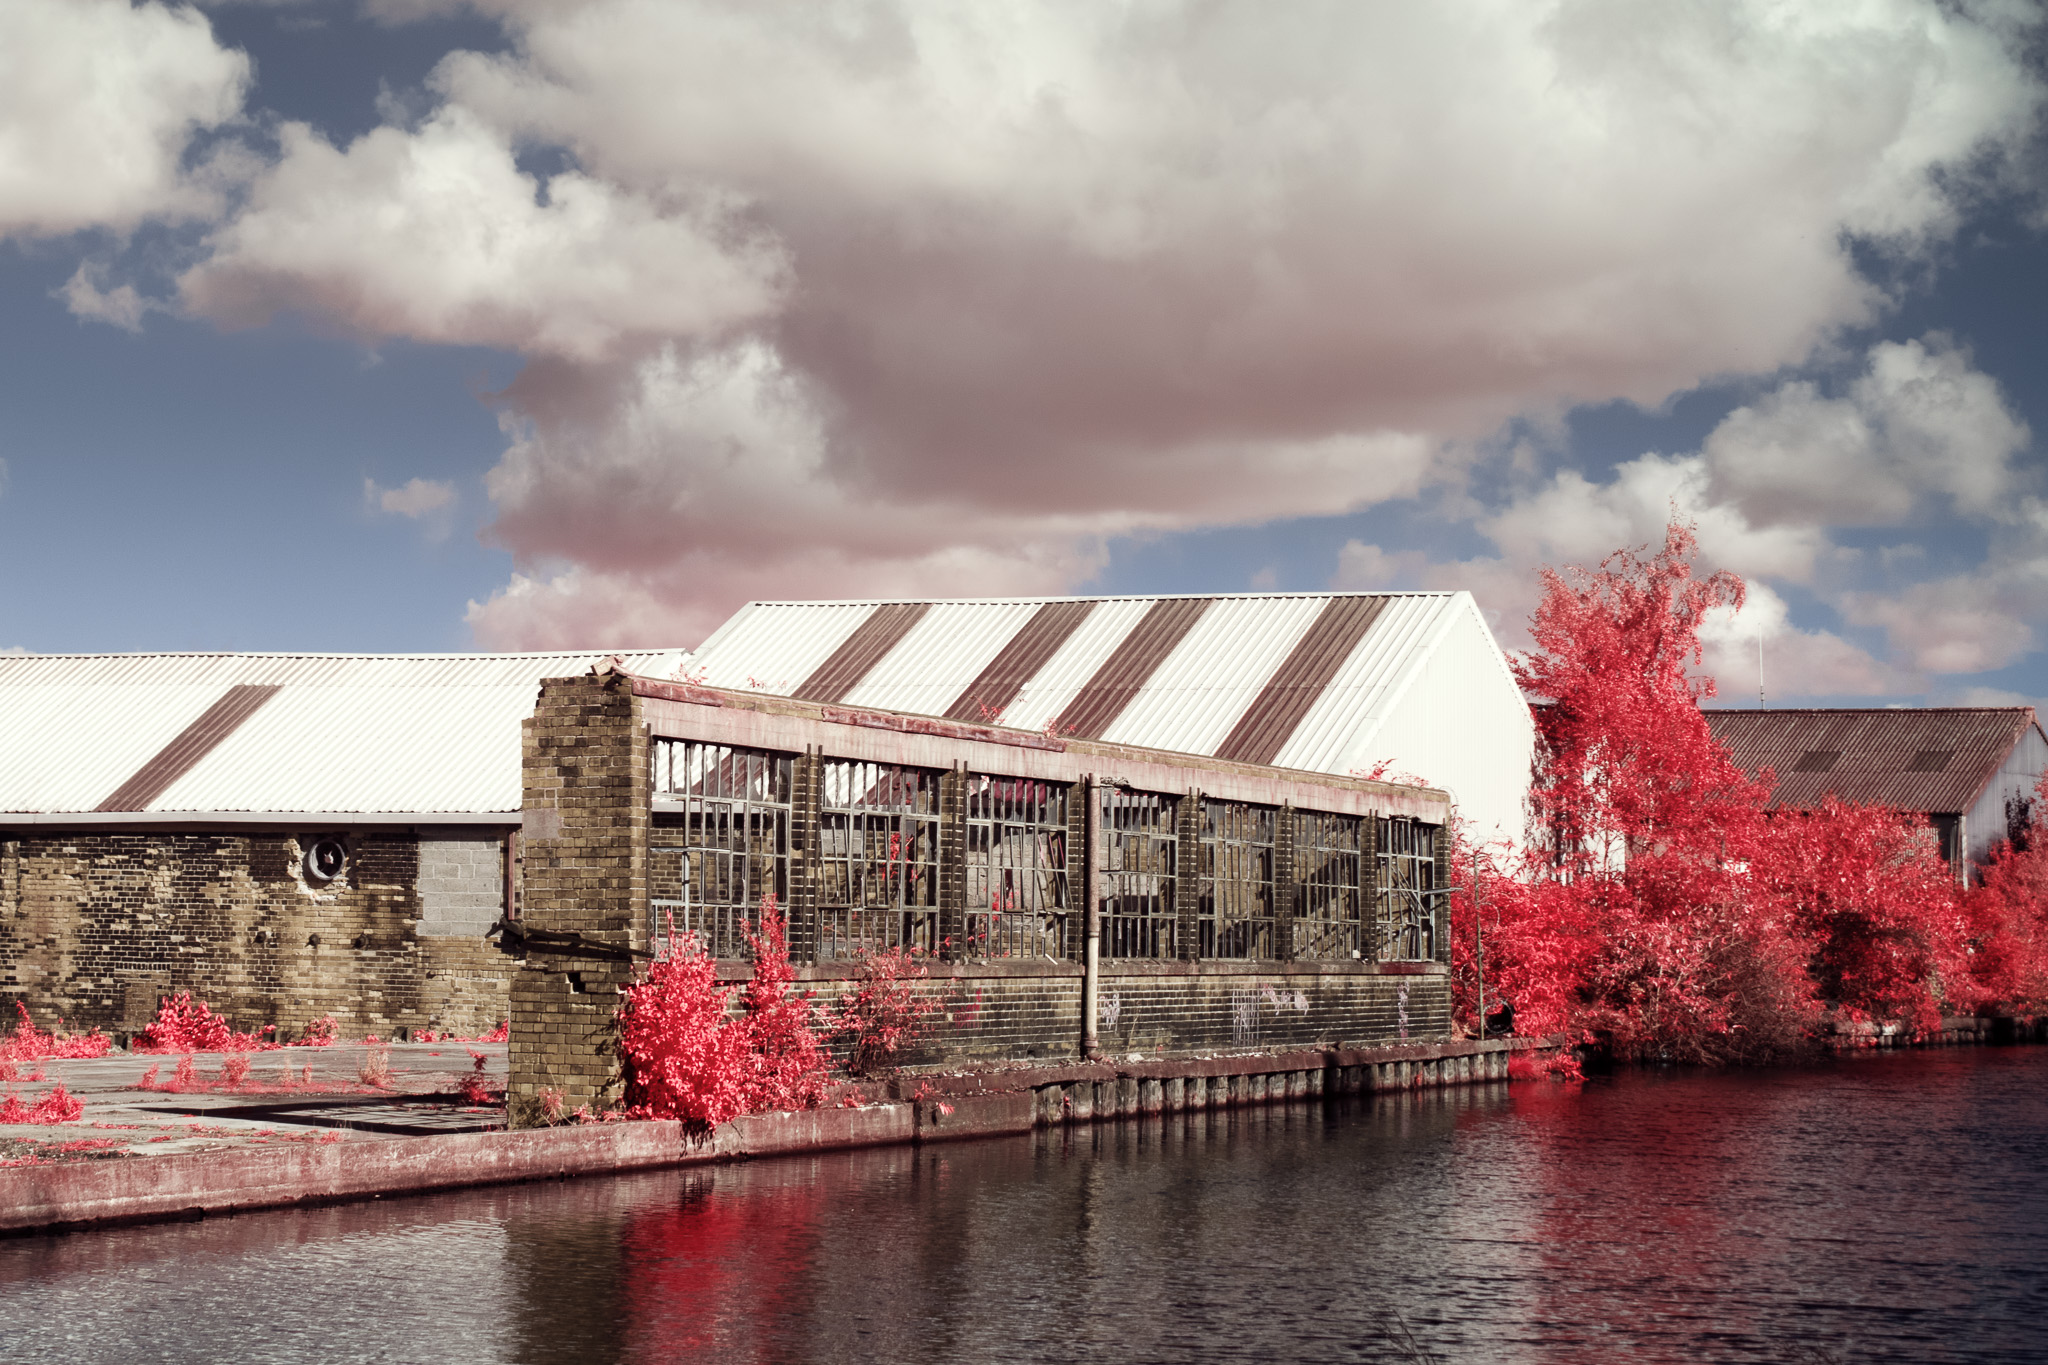 Kodak EIR Colour Infrared, Edgelands, Wasteland, Out of sight,  Canal 2 ©Jonny Sutton